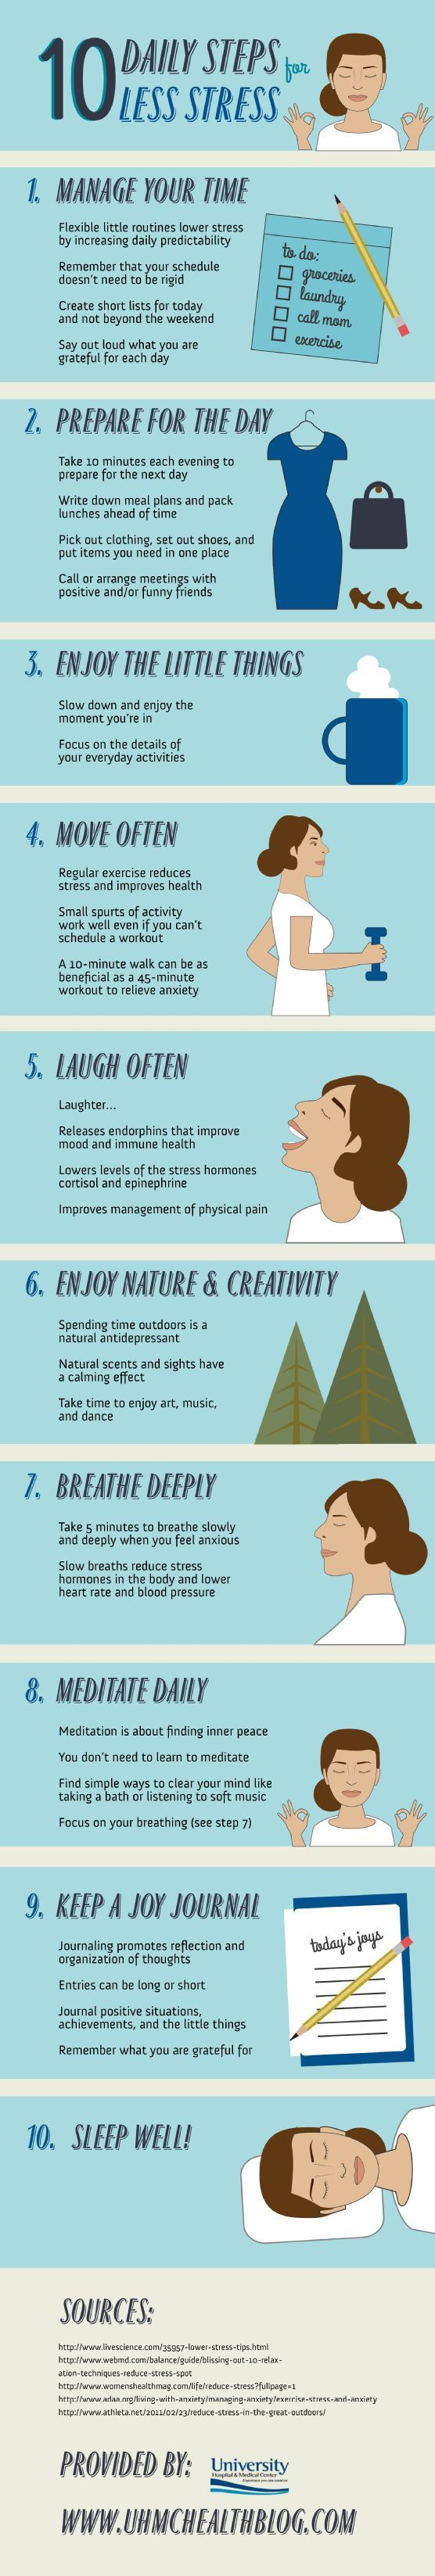 Find yourself getting stressed? Here are 10 daily steps for less stress.